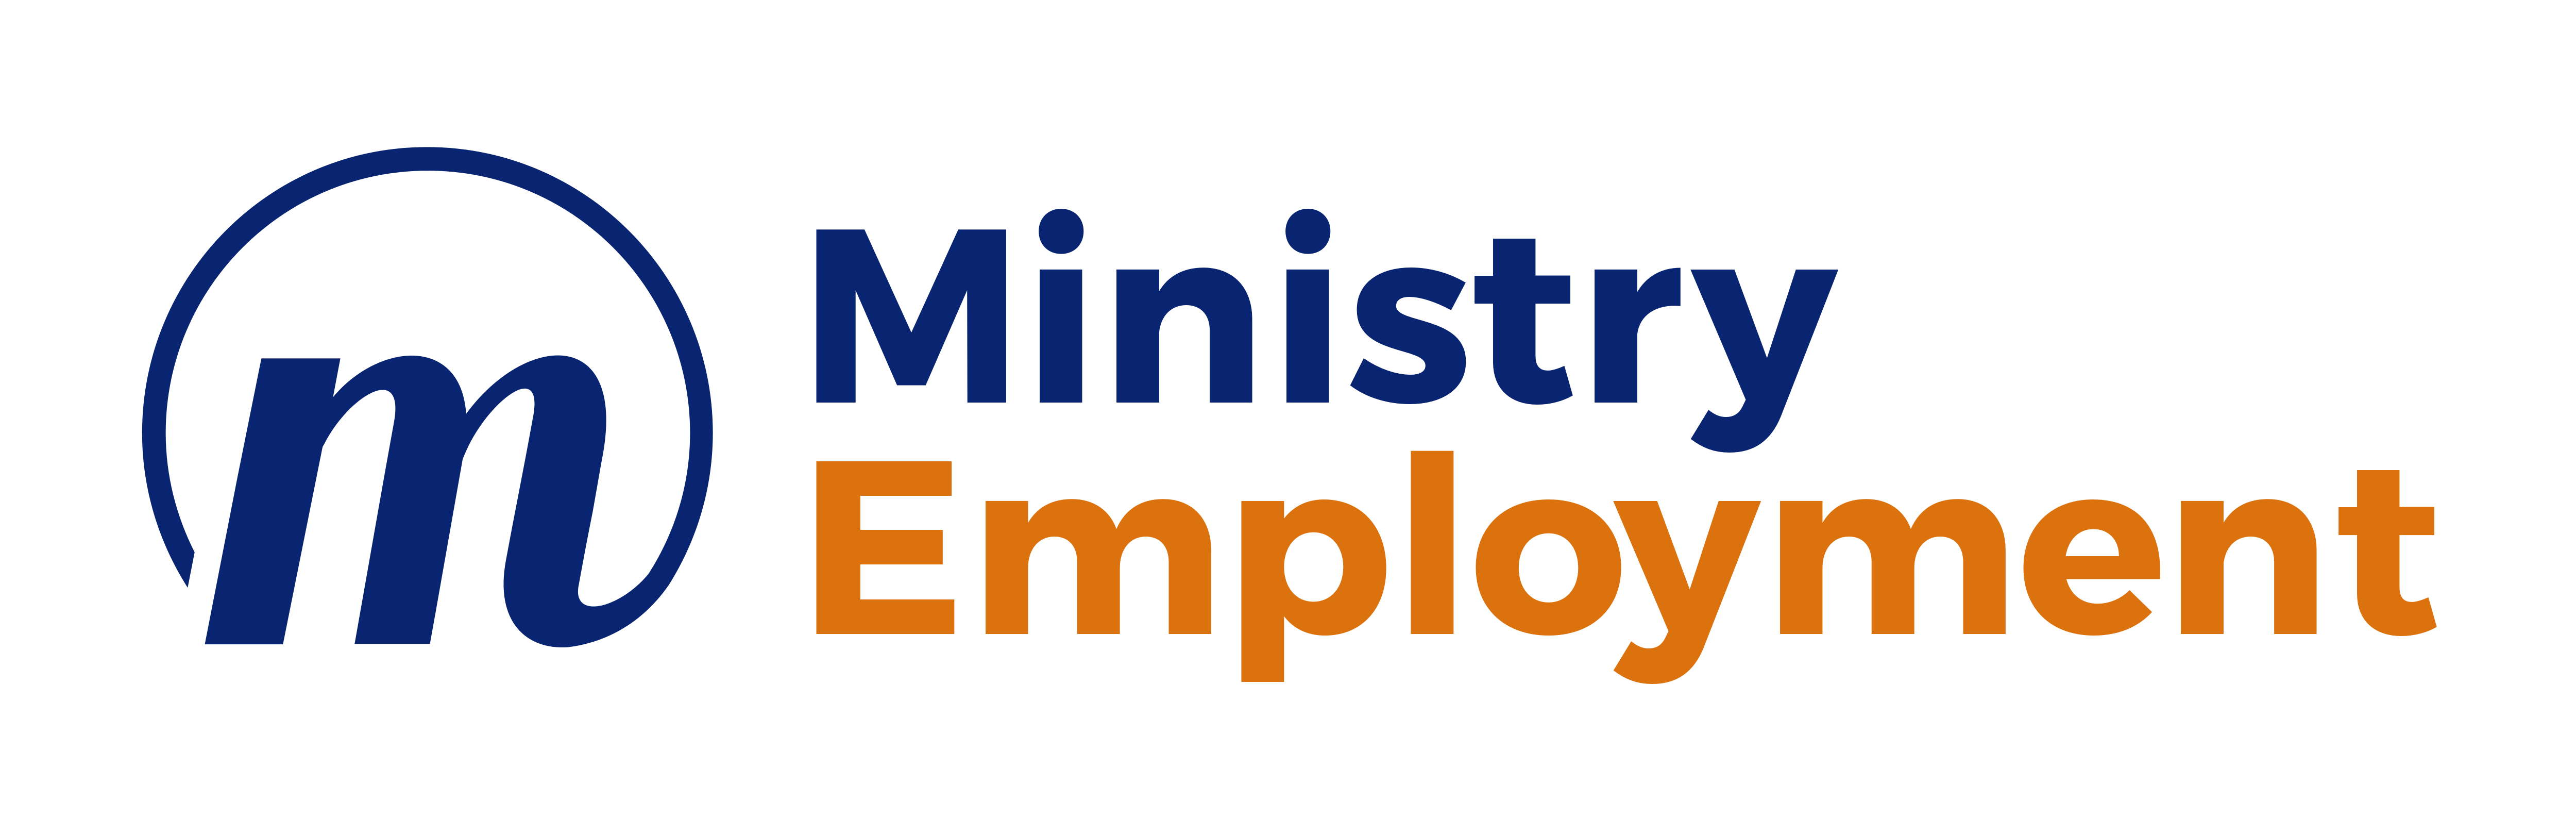 Ministry Employment